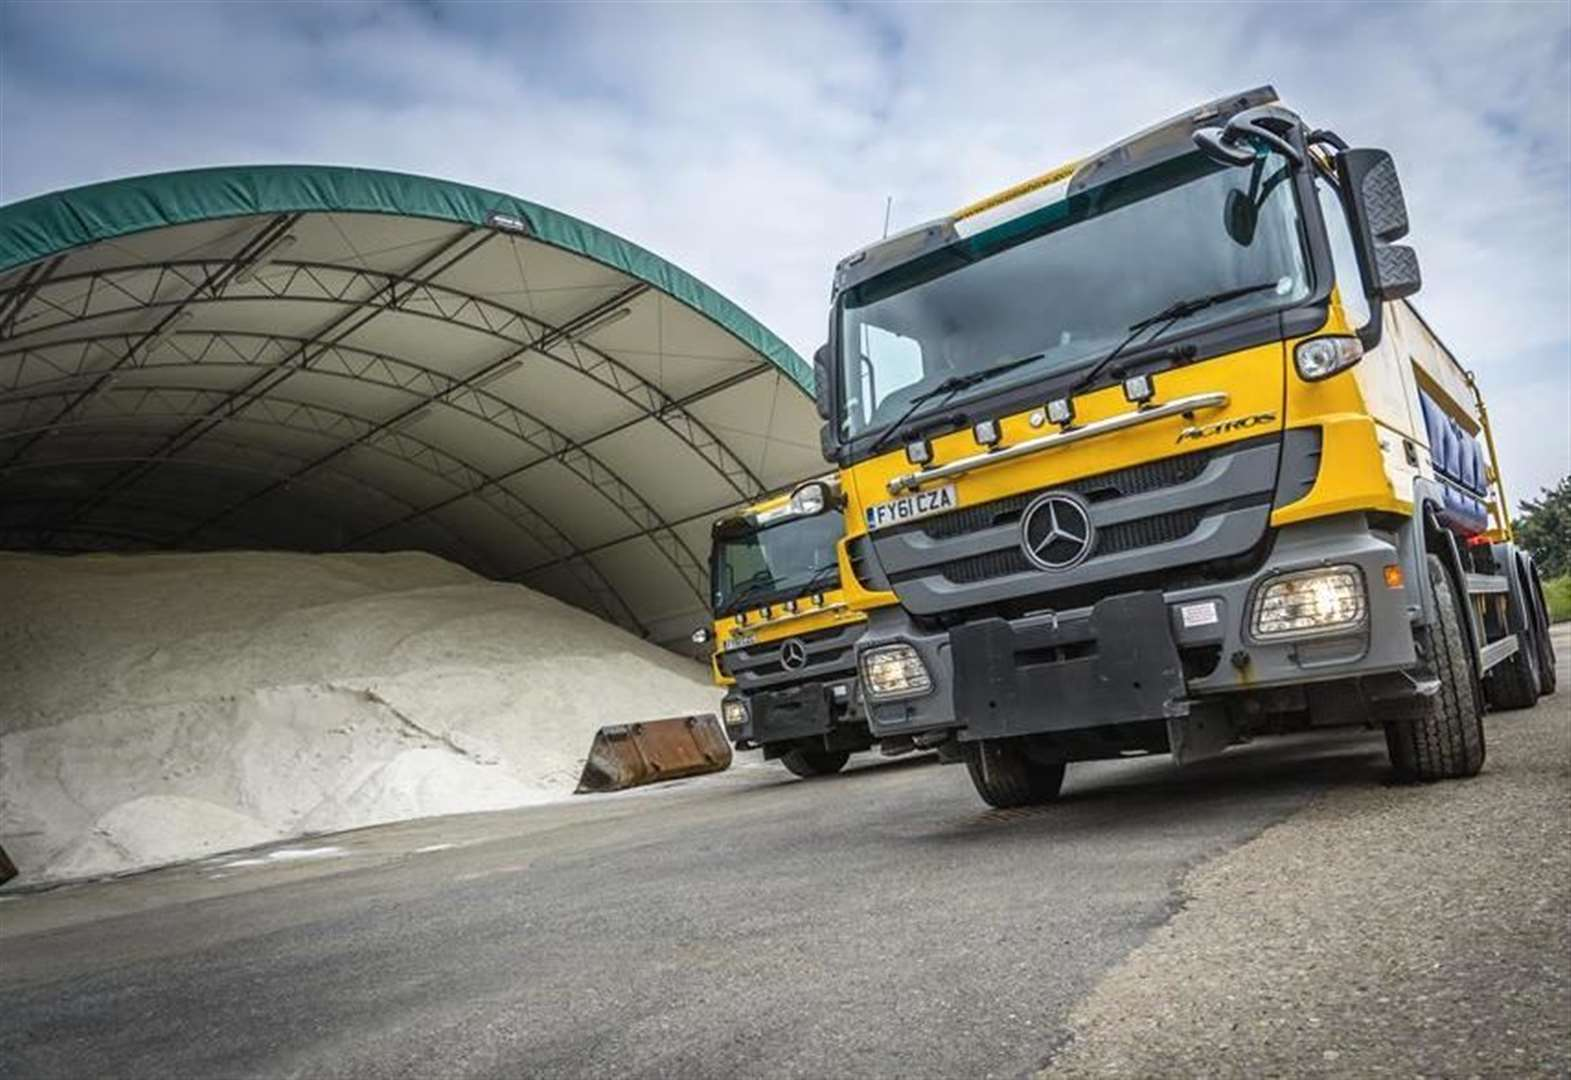 Gritters on alert ahead of freezing conditions